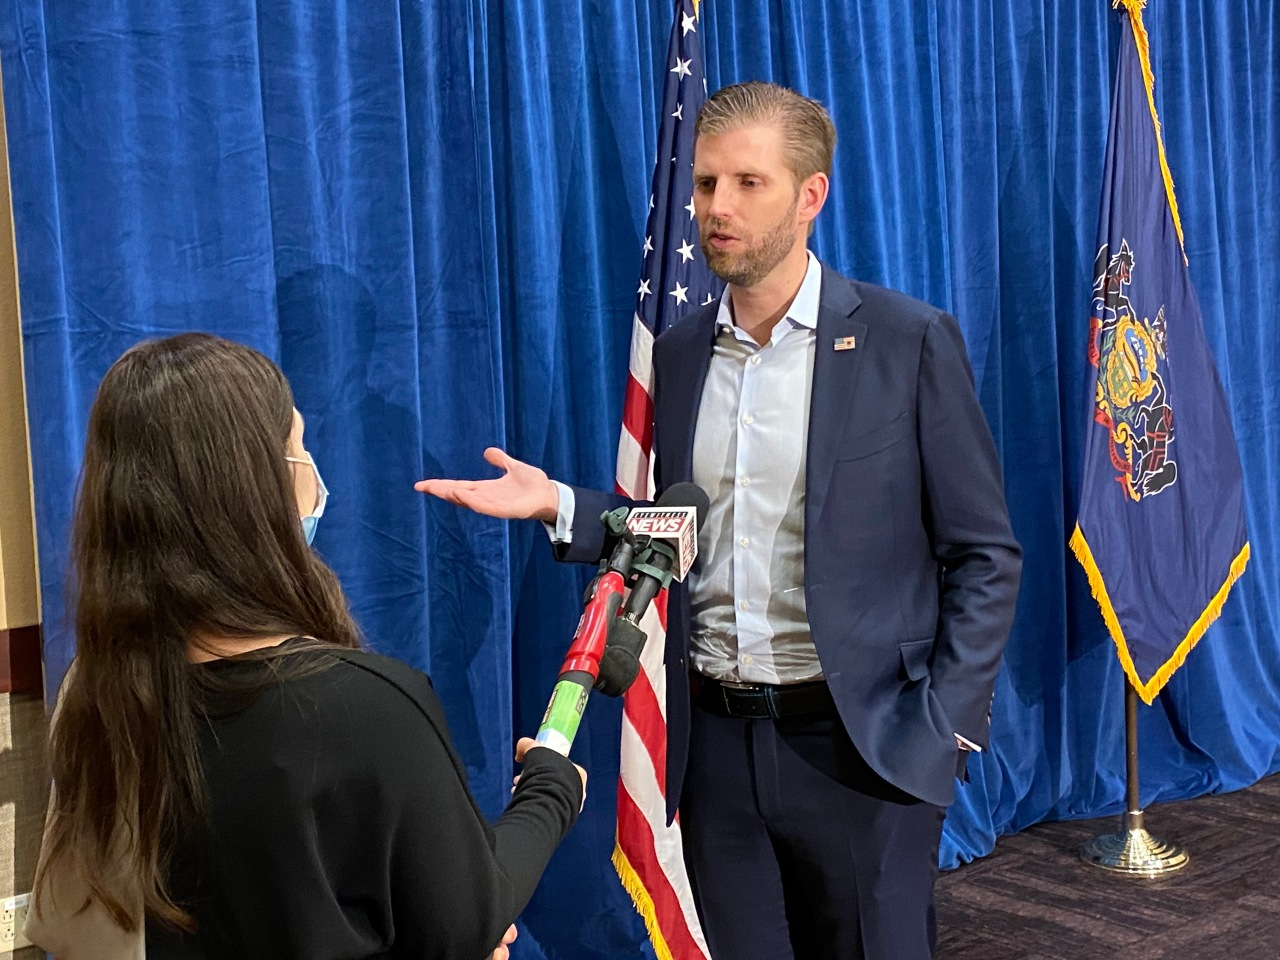 One-on-one interview with Eric Trump